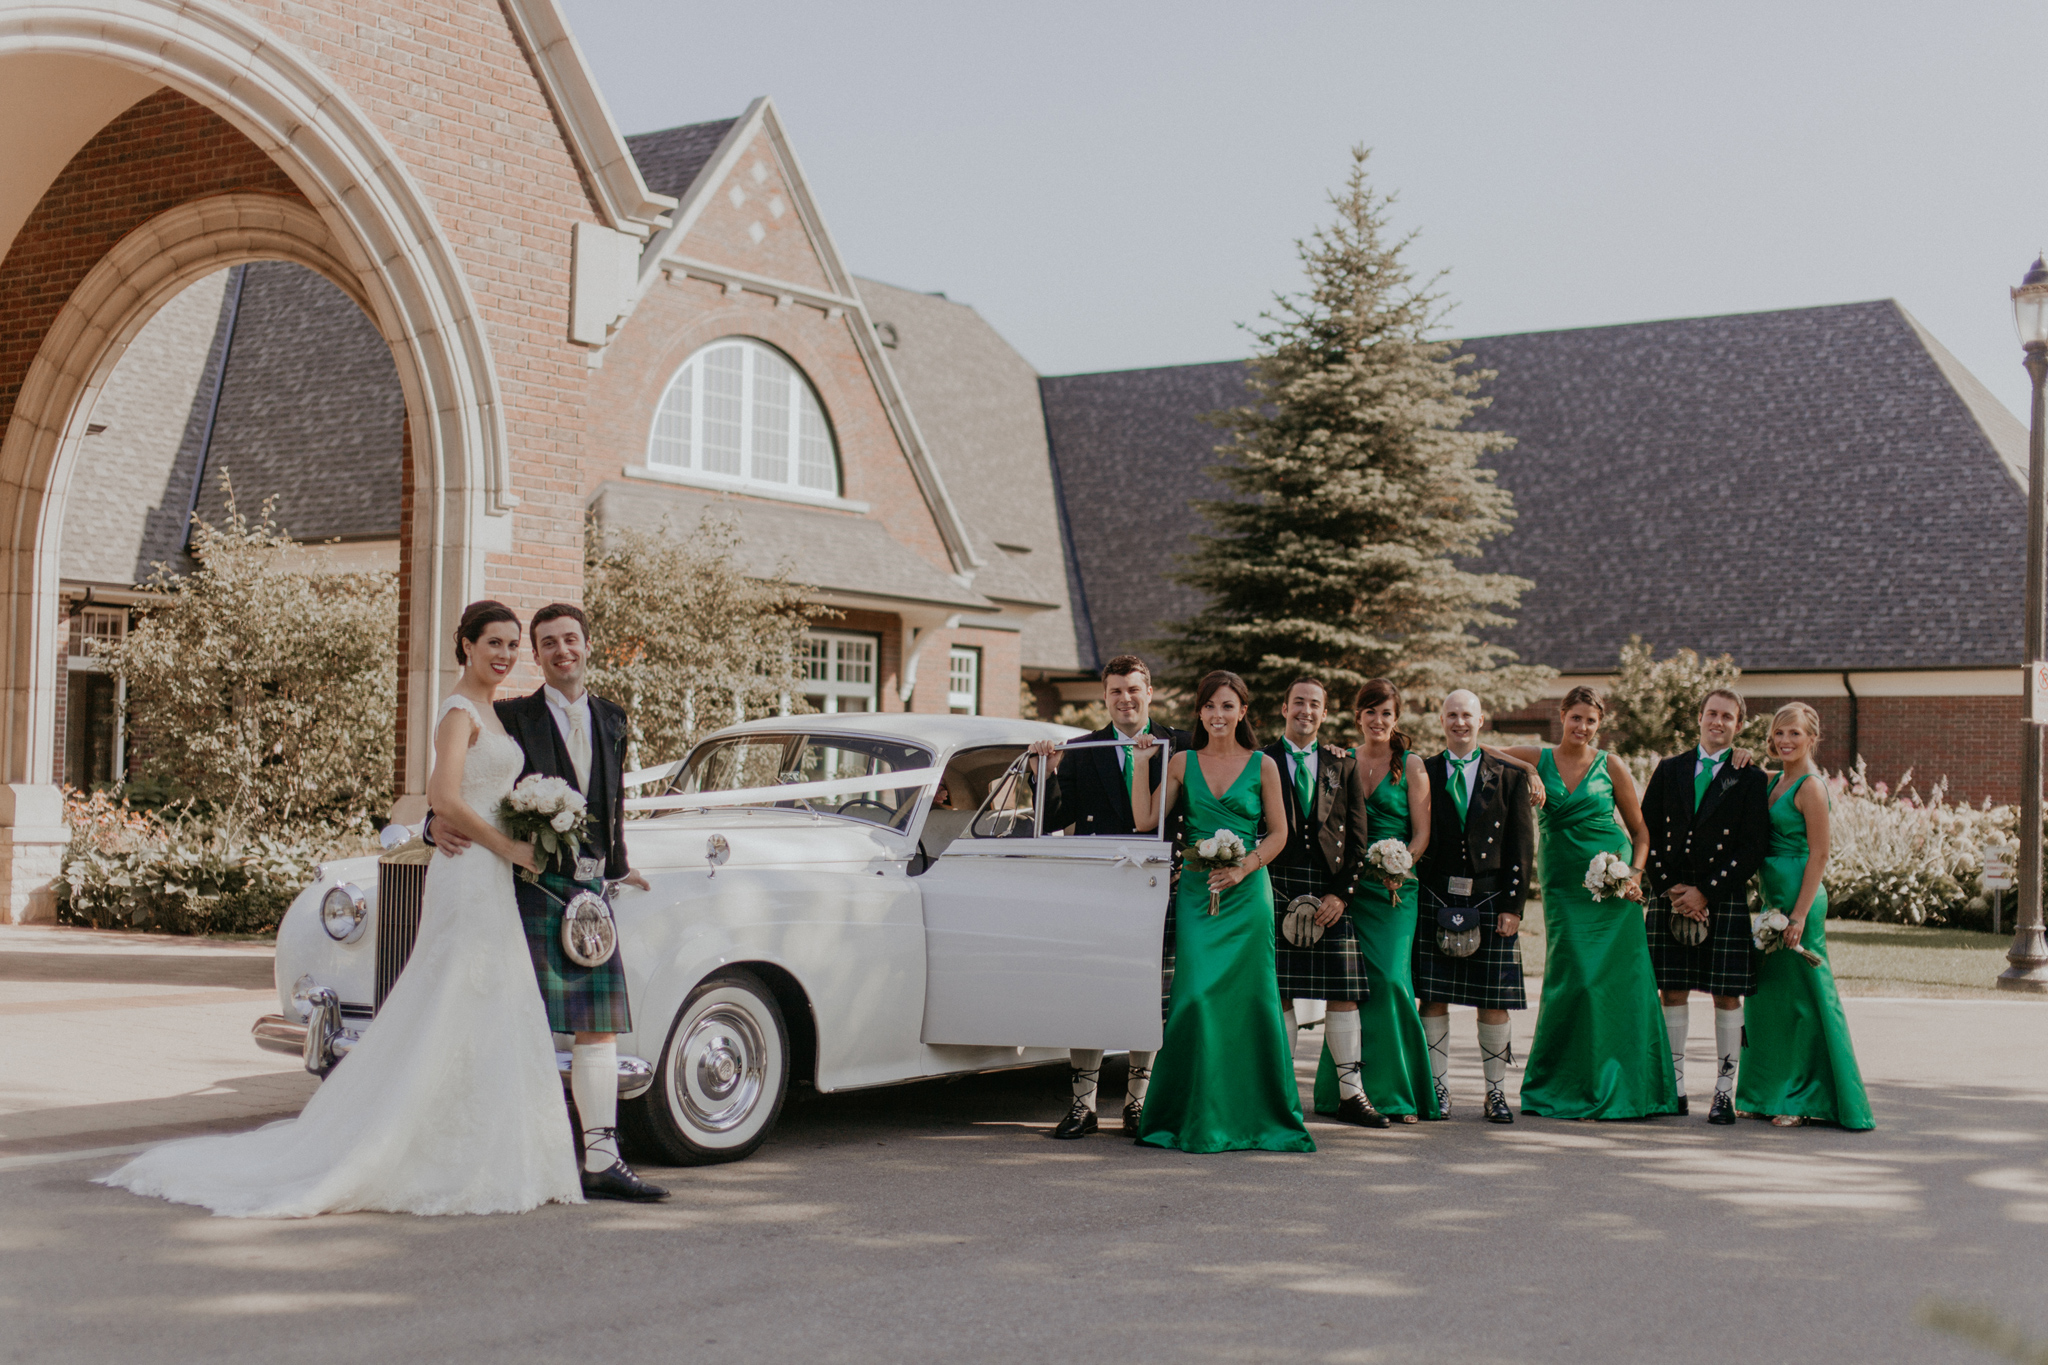 Wedding party pose in kilts and green bridesmaid's dresses with Rolls Royce